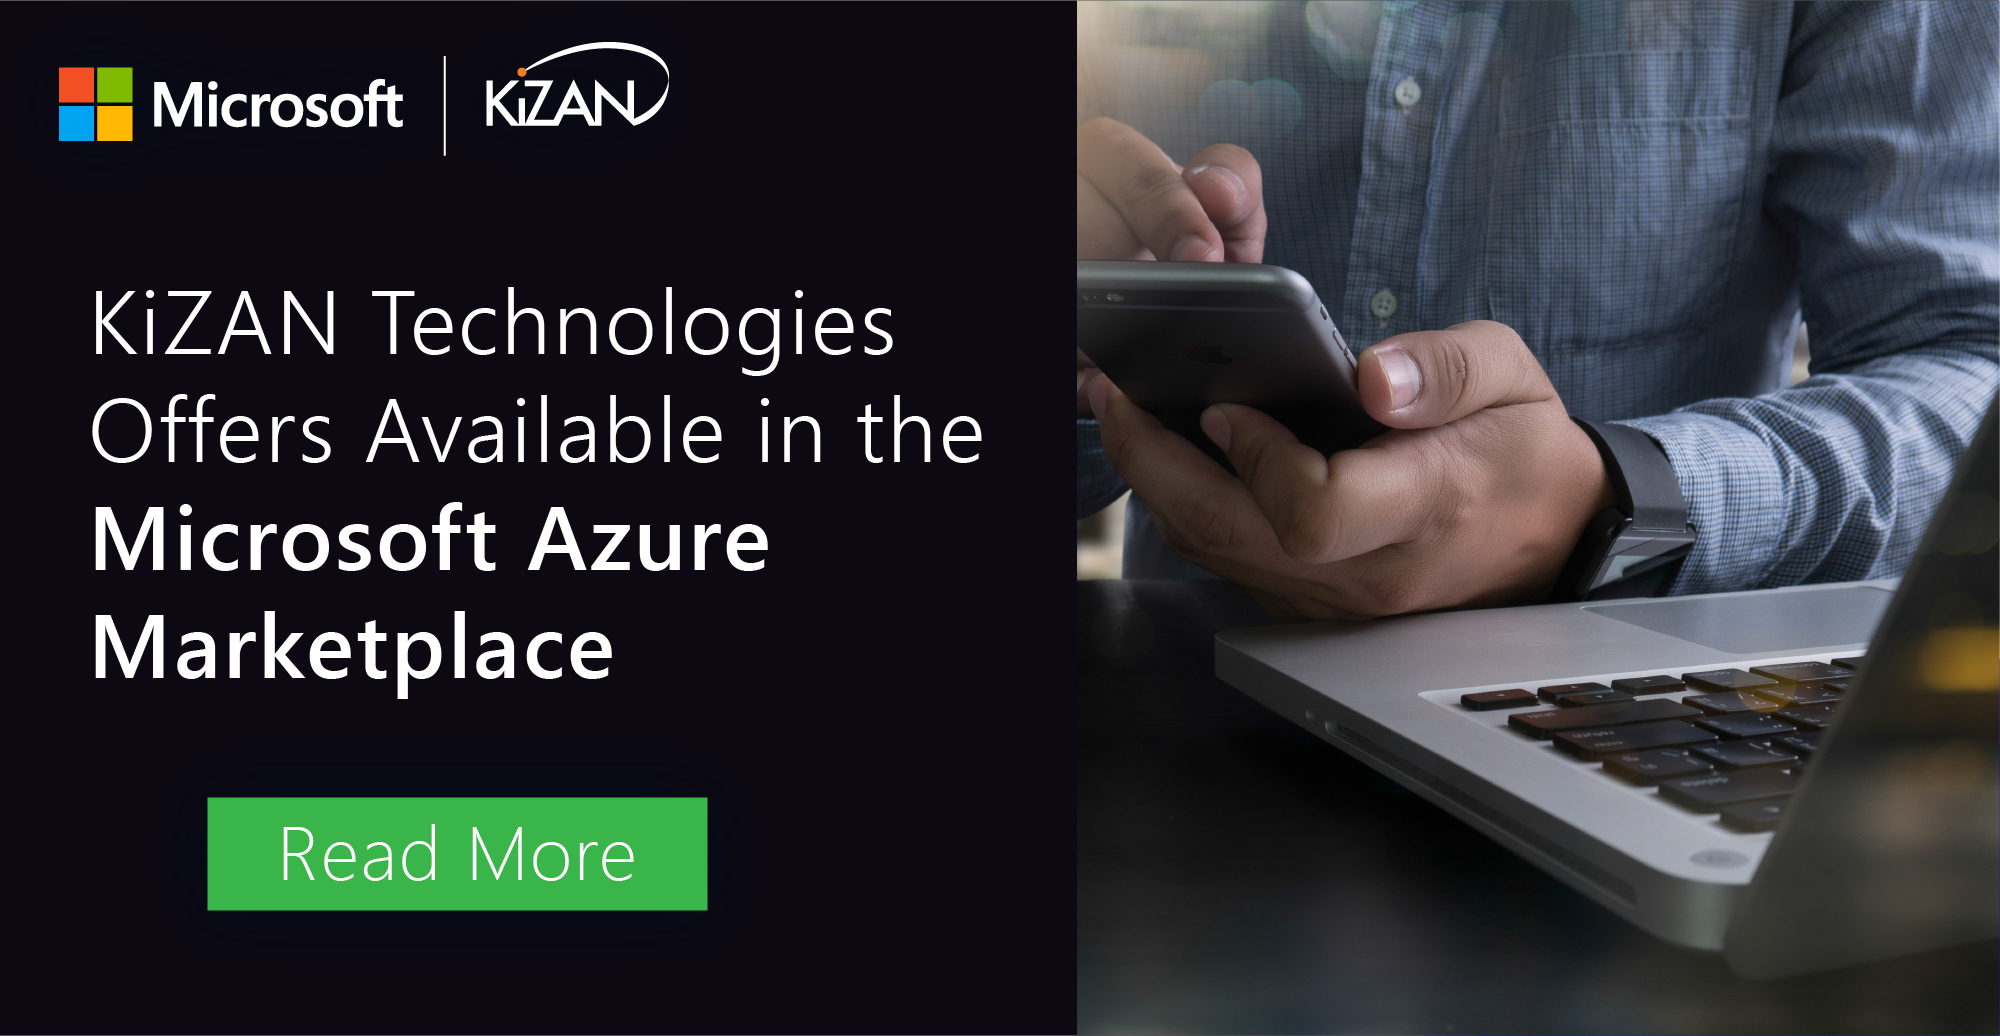 KiZAN Technologies Offers Available in the Microsoft Azure Marketplace